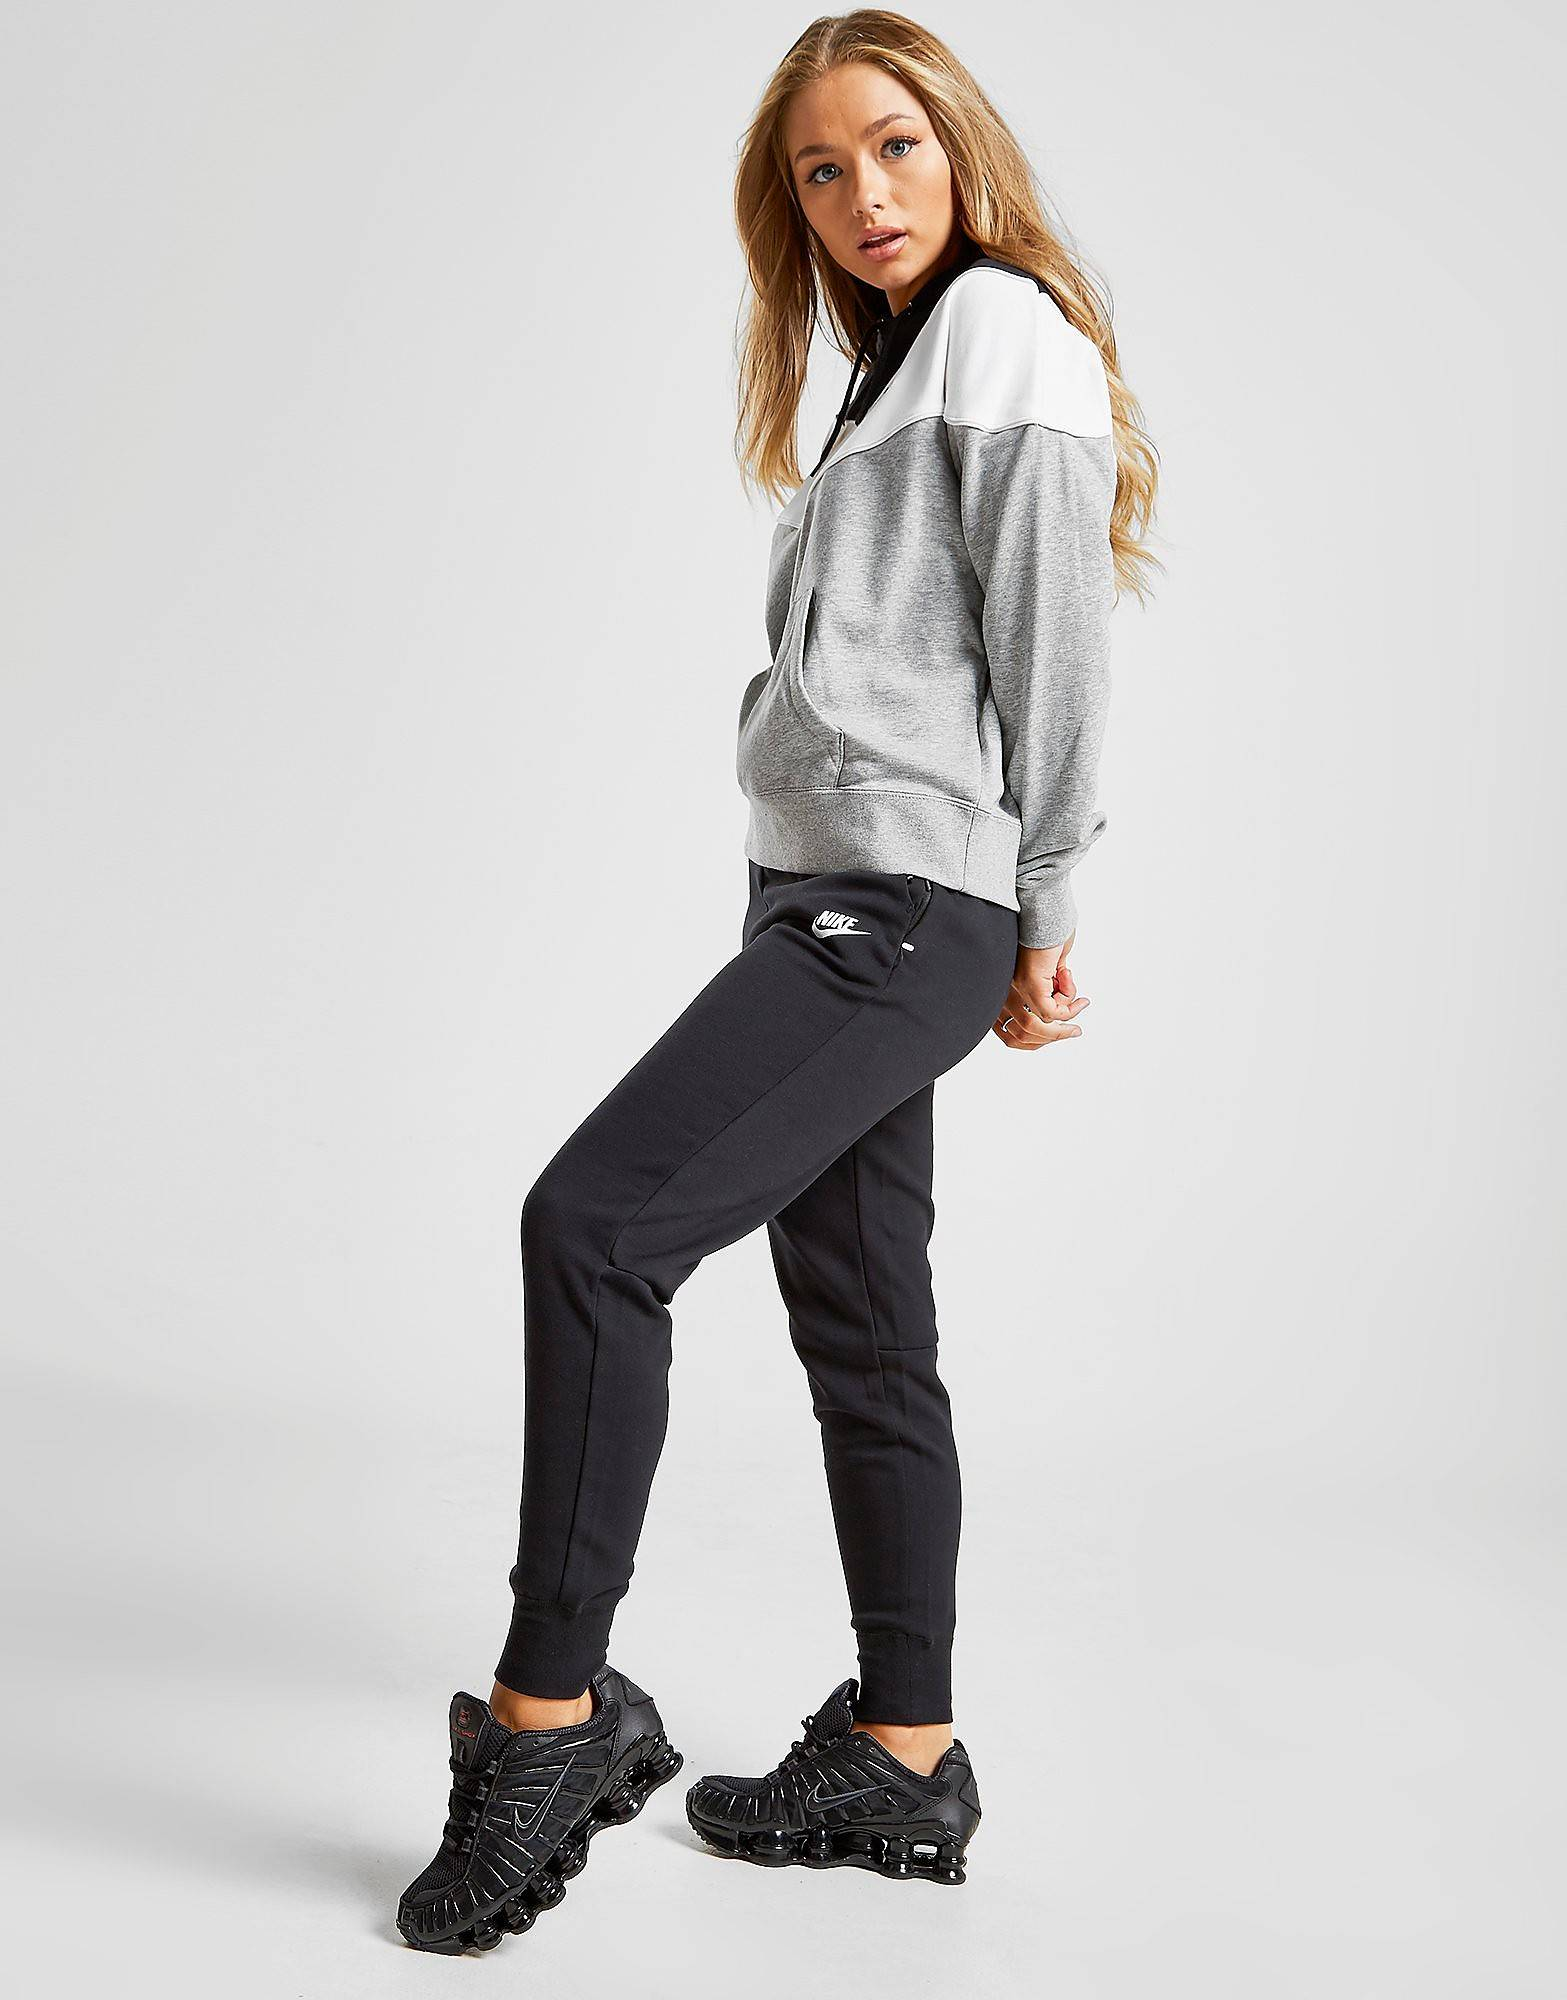 Image of Nike Tech Fleece Joggers - Womens, Musta